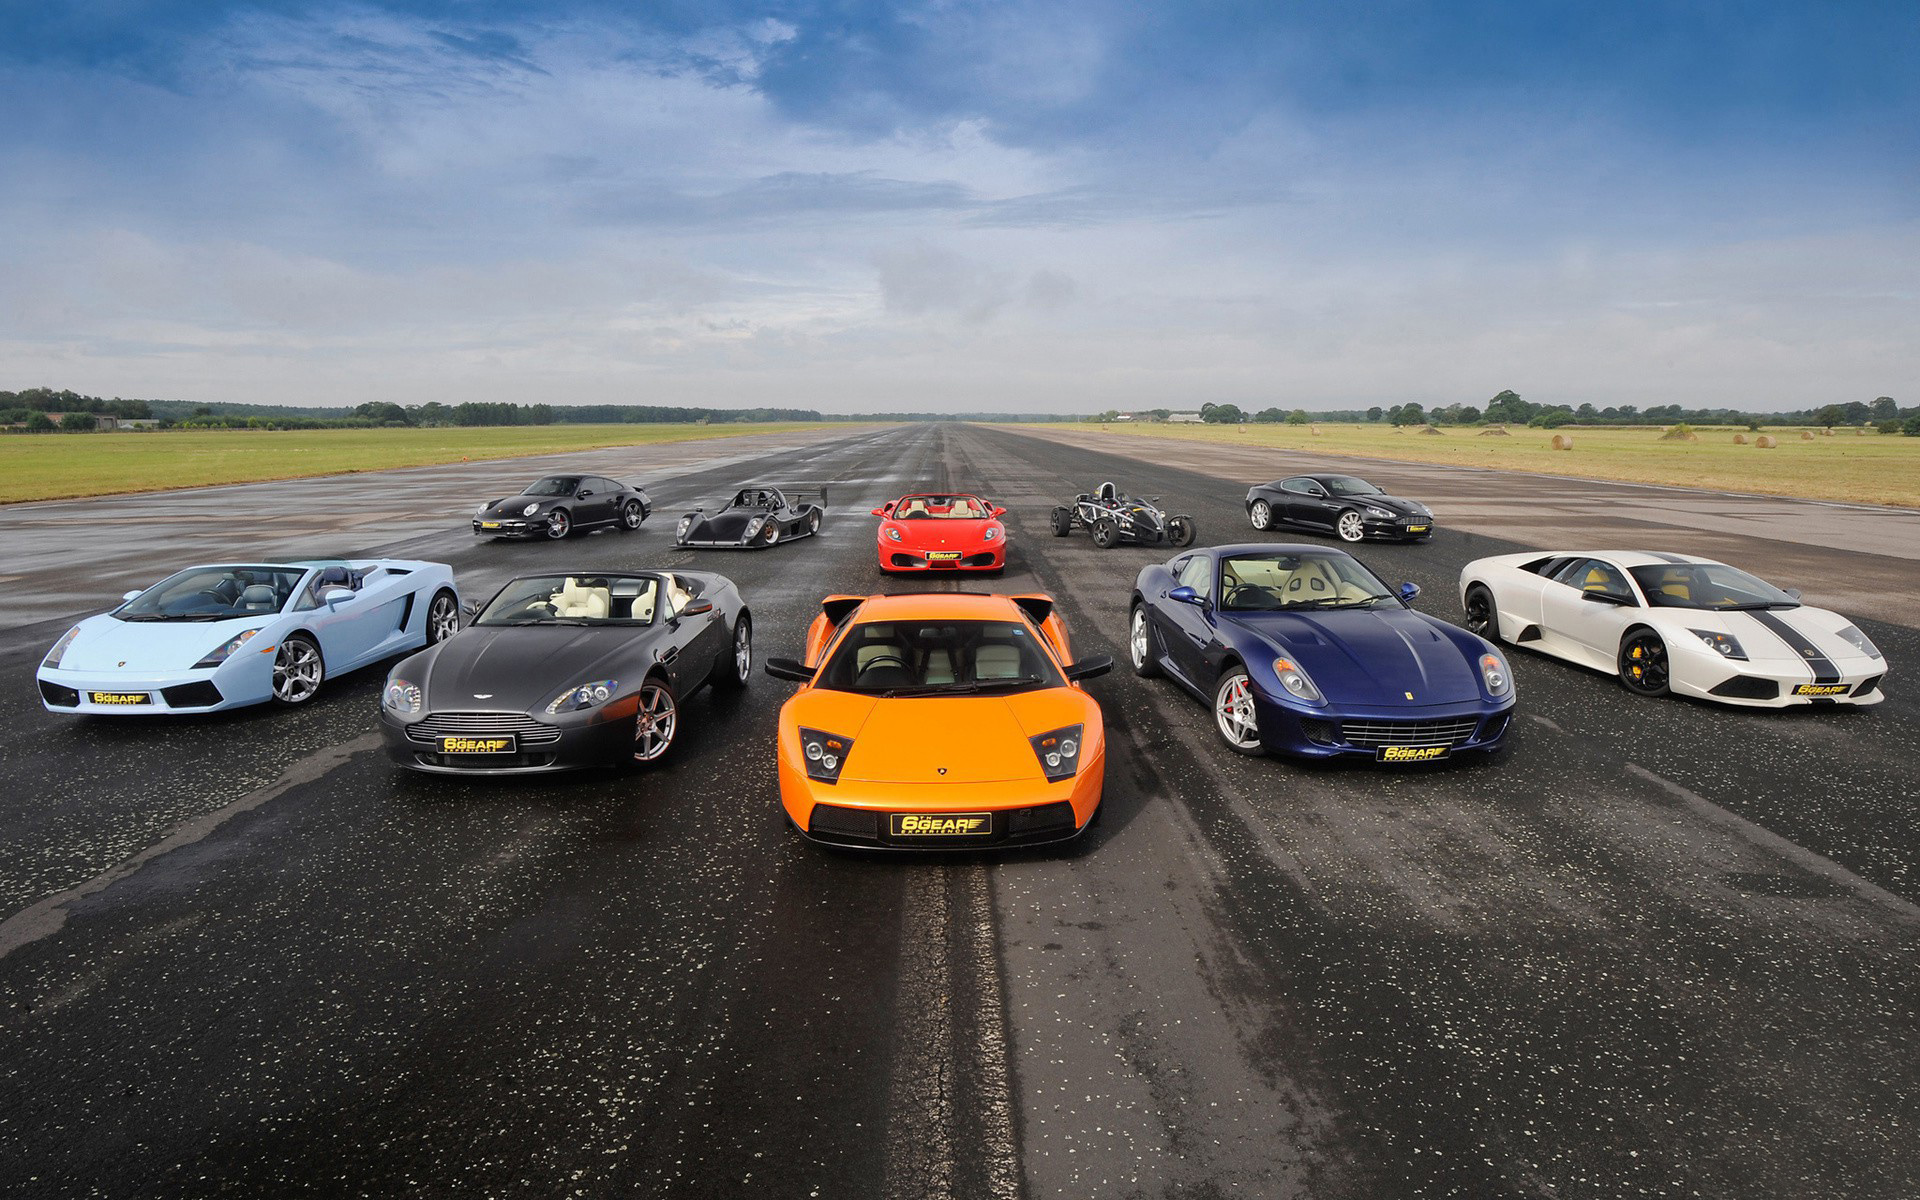 car racing Choose from the world's largest and fastest selection of supercars and race cars at las vegas' only five star driving experience starting from $199.